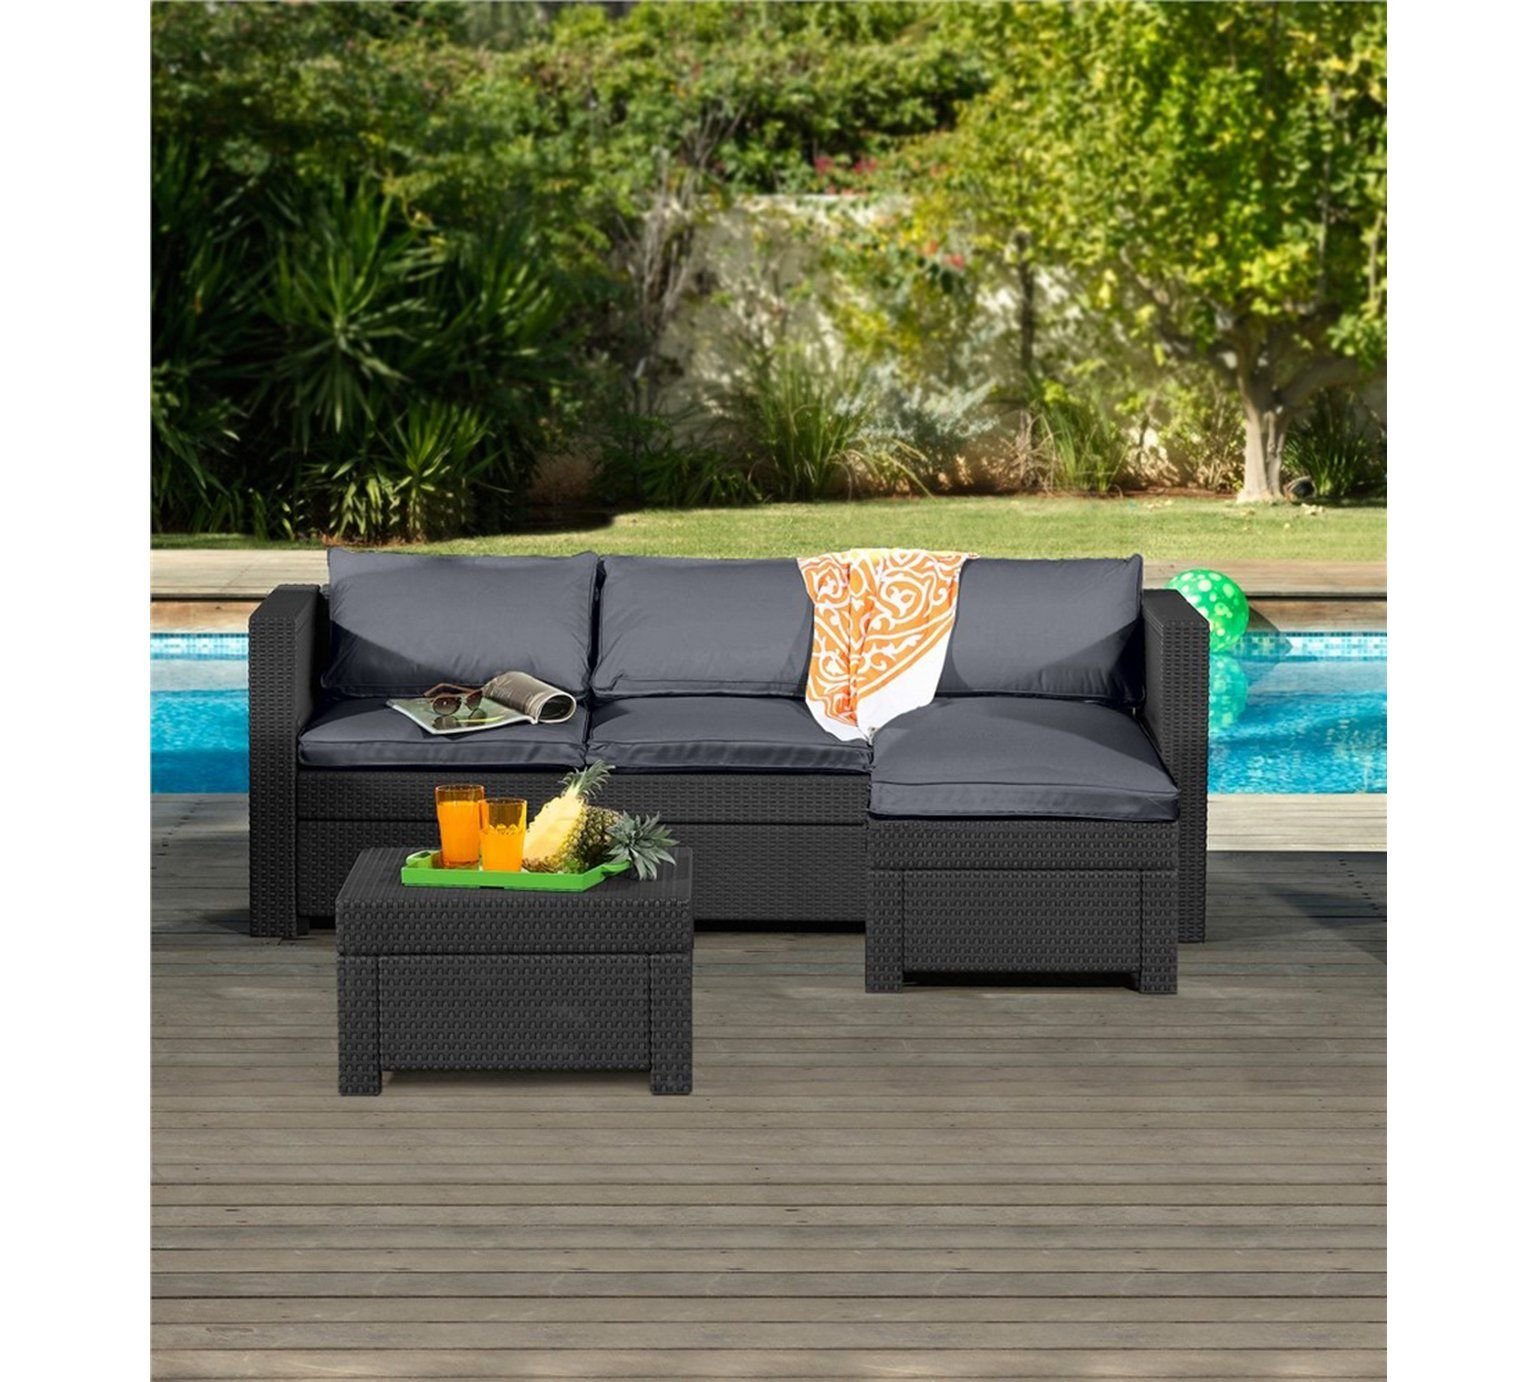 Keter Oxford Rattan Effect Outdoor Corner Sofa Graphite